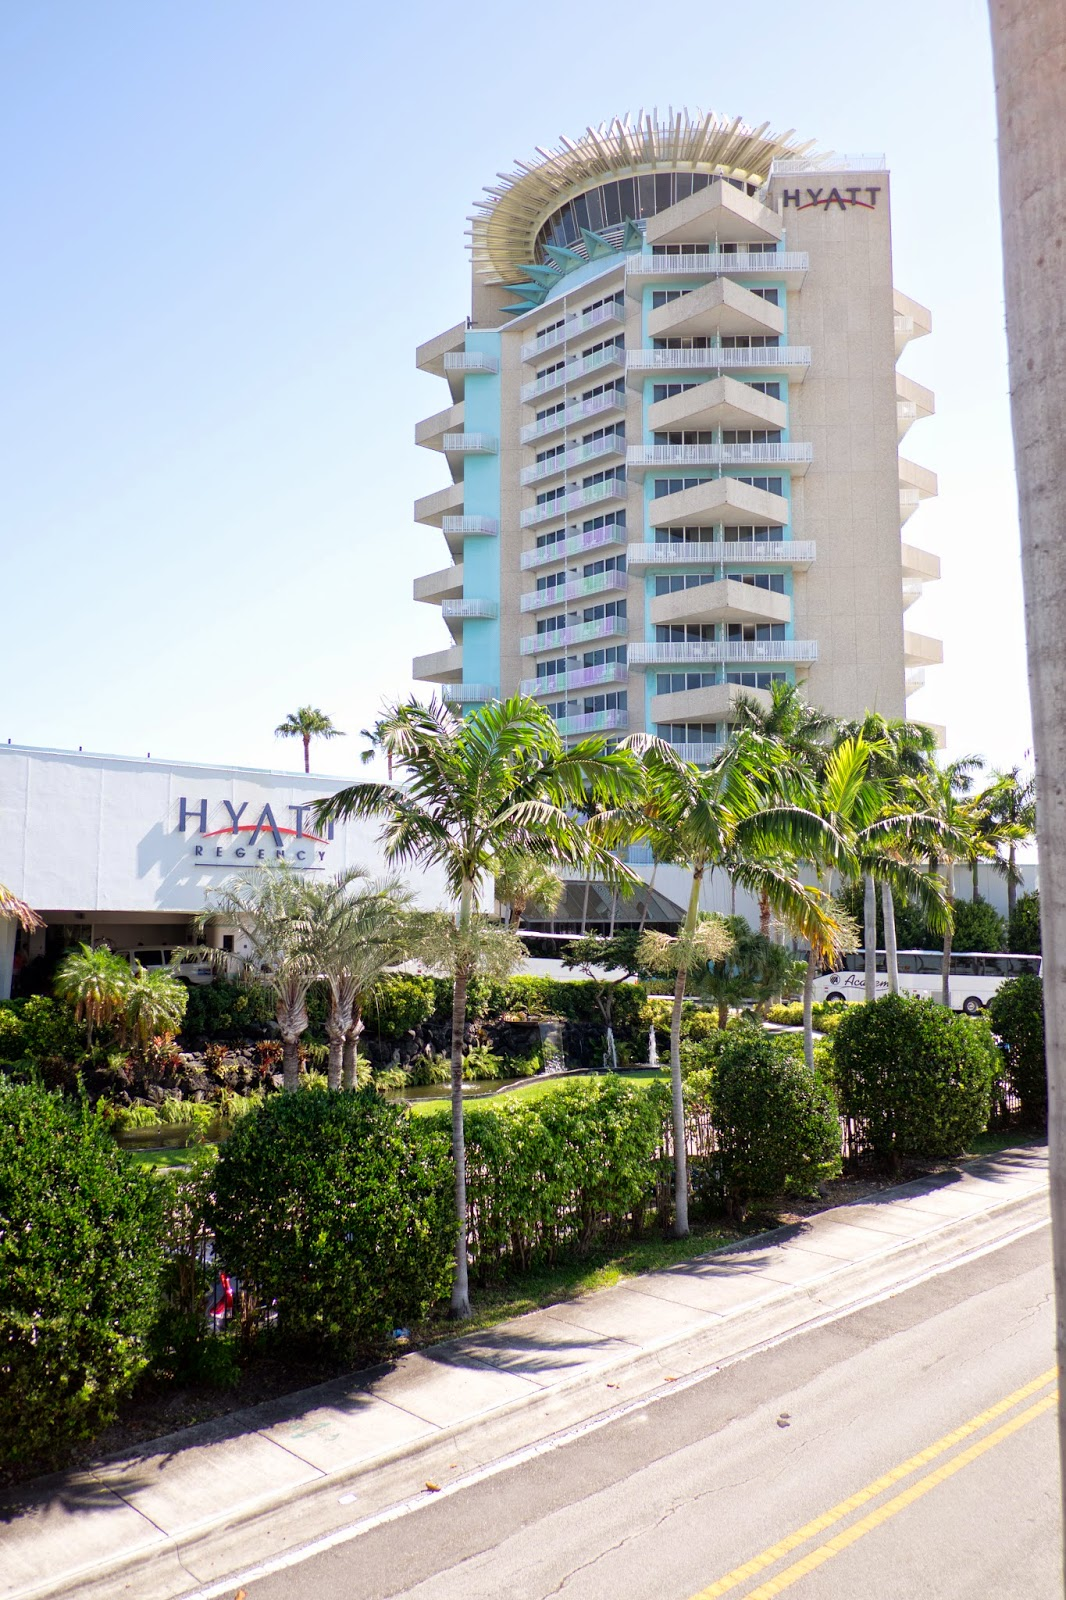 The Hyatt, Fort Lauderdale, Florida